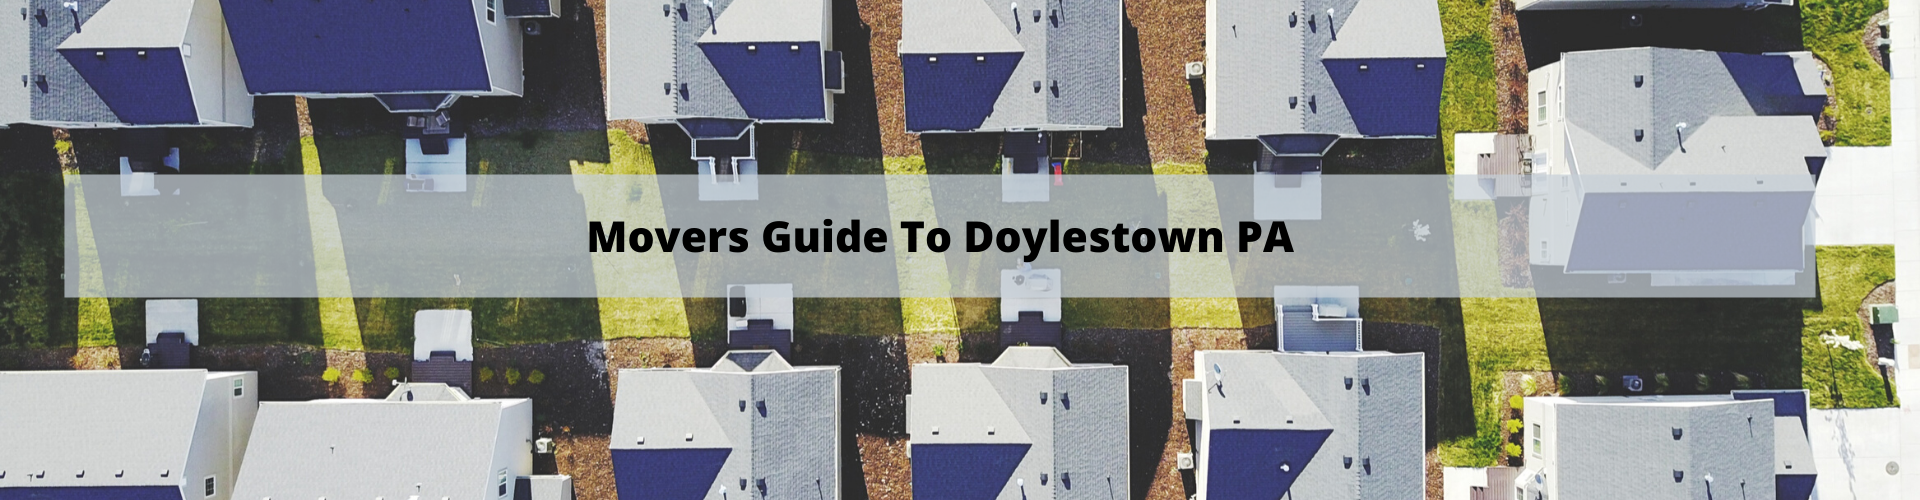 Movers Guide To Doylestown PA